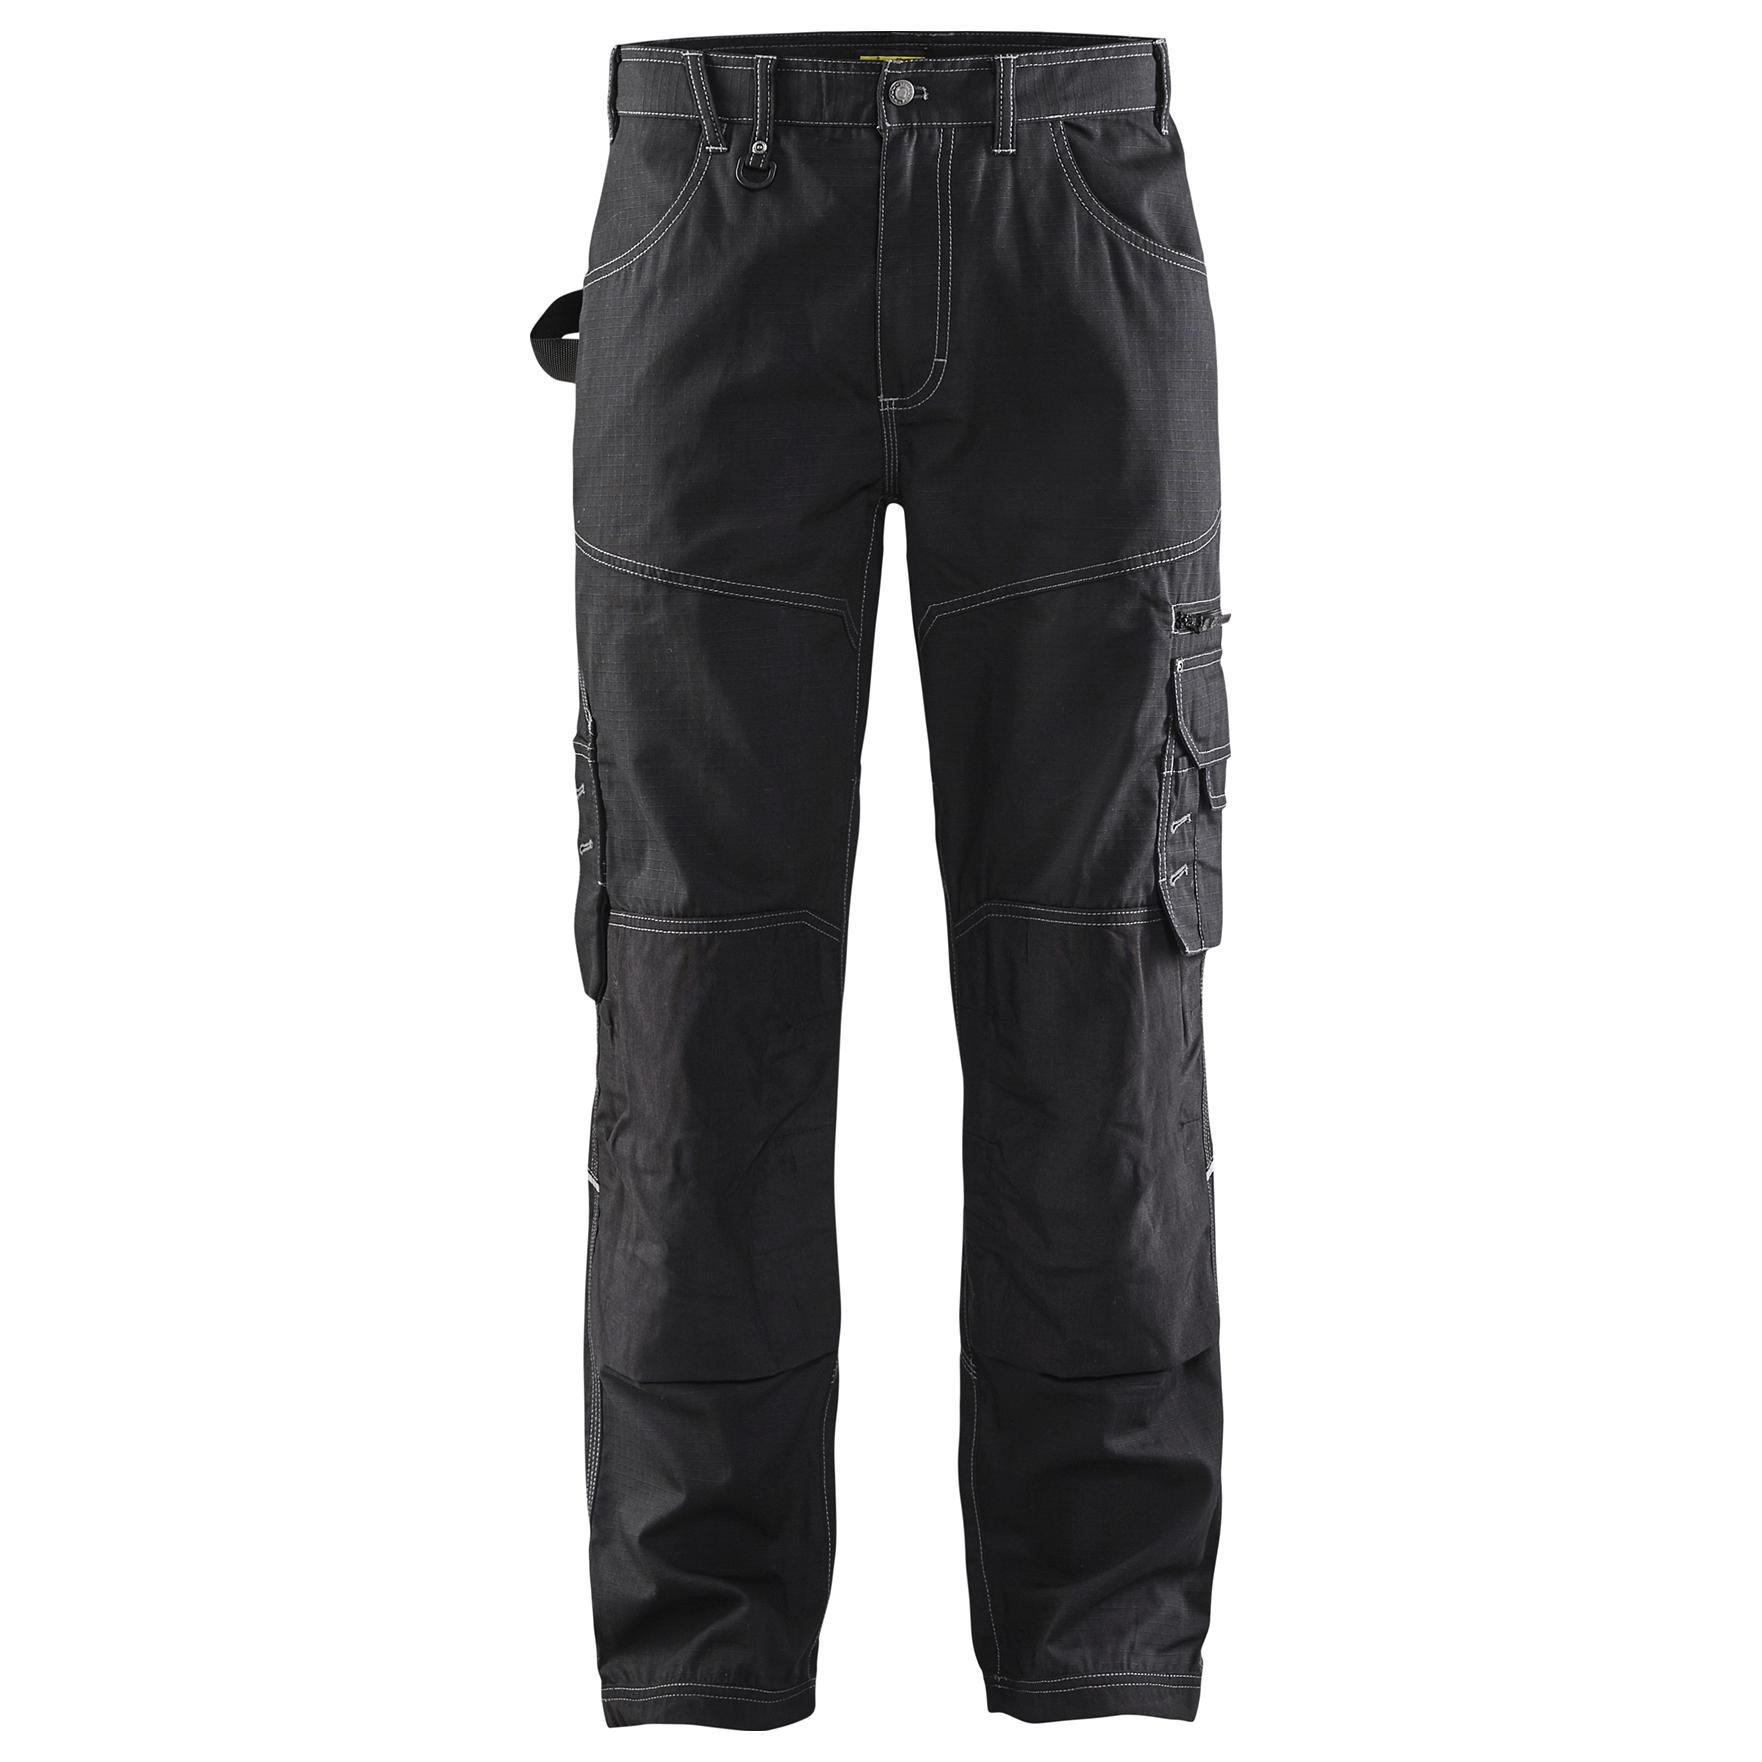 cd2baf00ab7 Blaklader 1690 Rip Stop Work Pants - Black